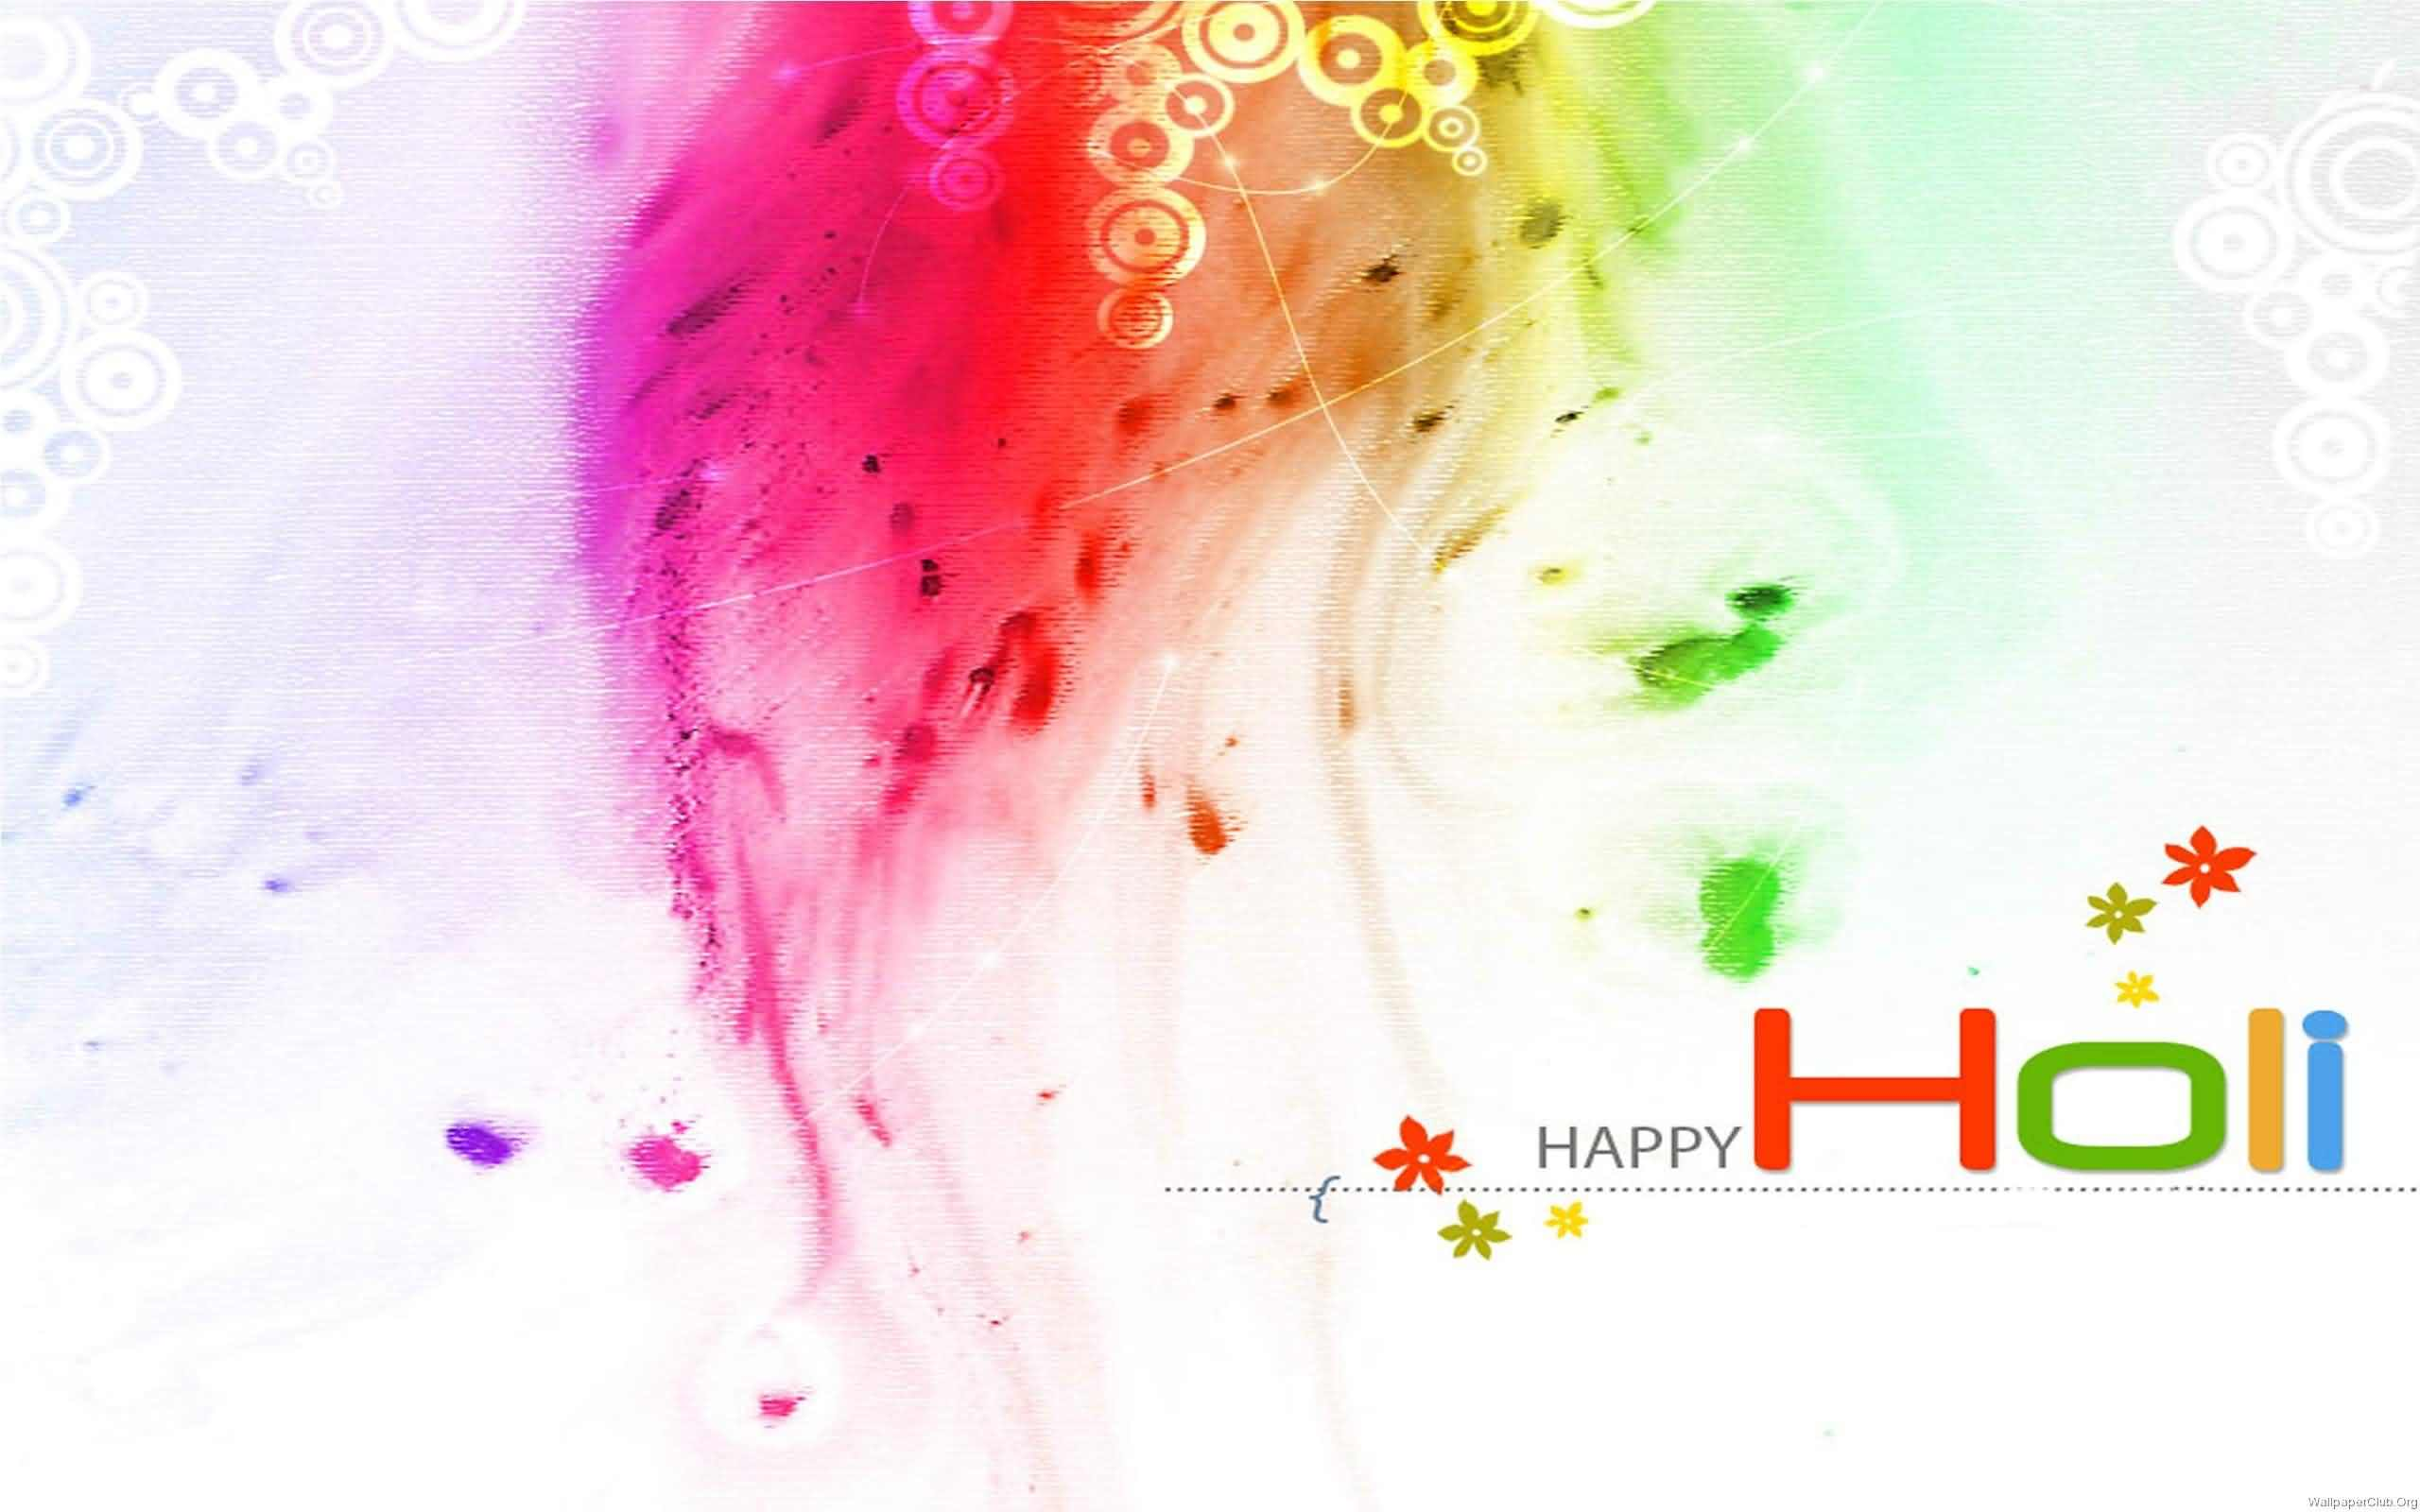 13-Holi Wishes